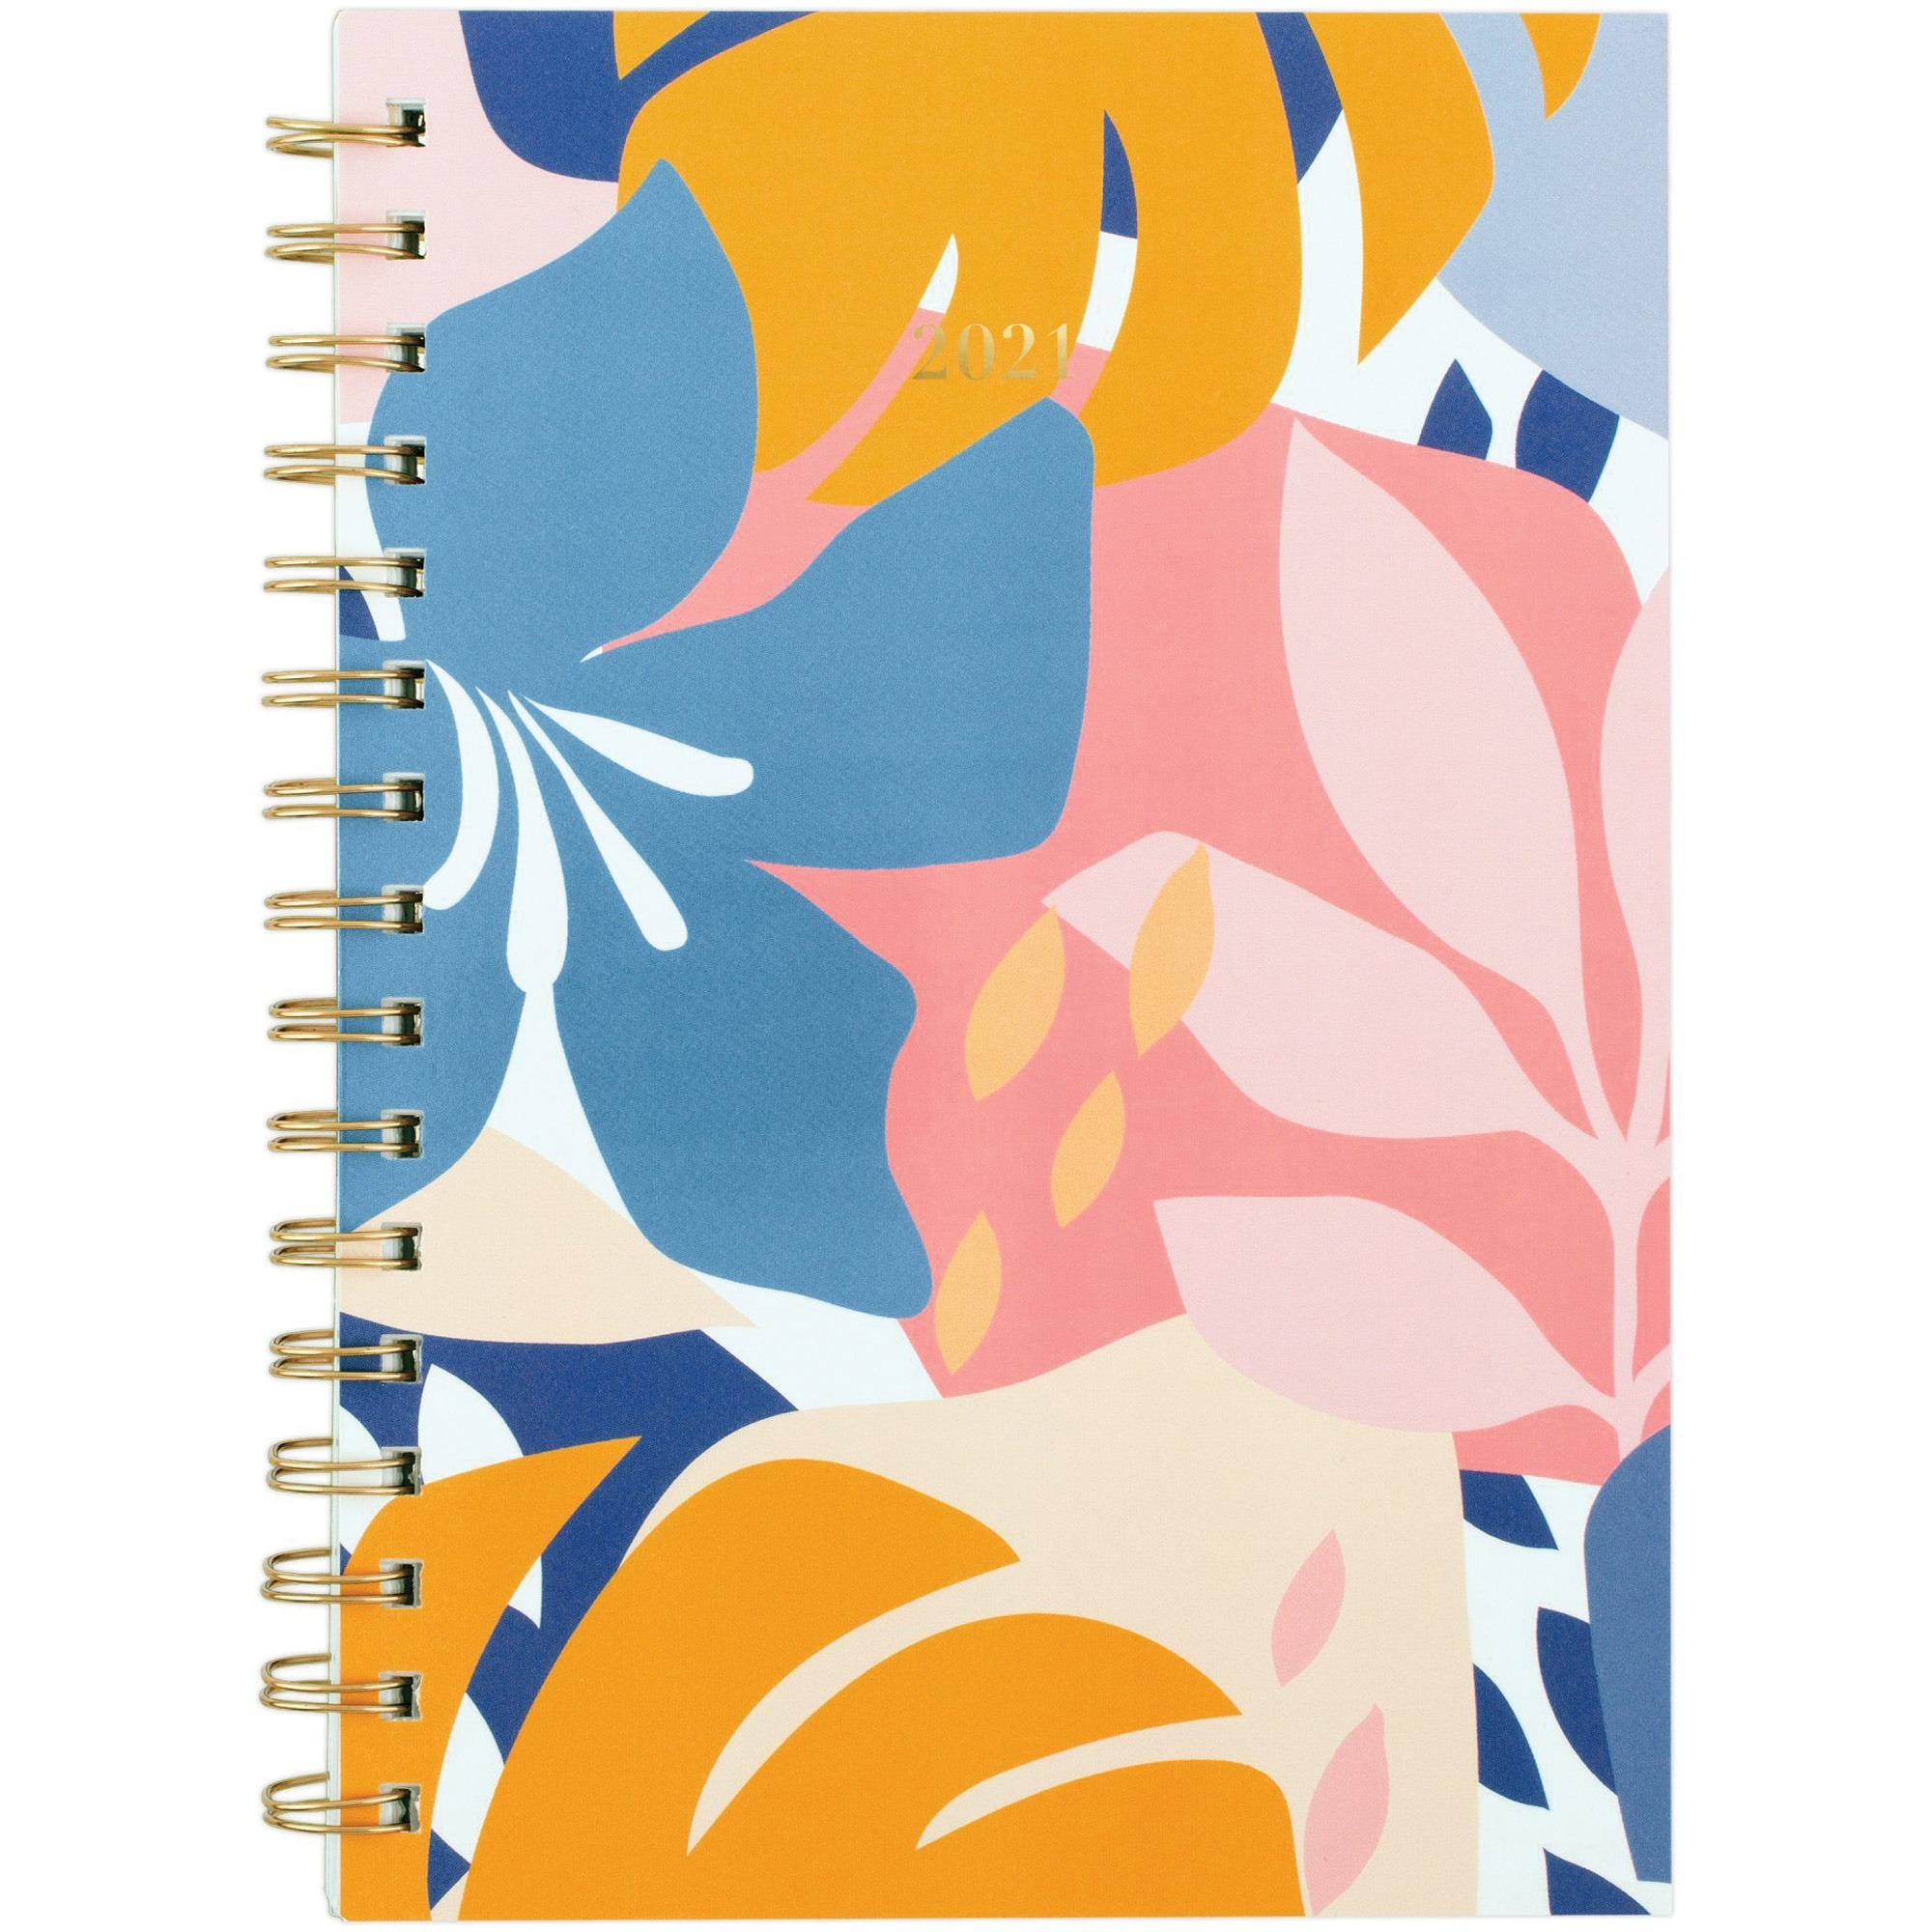 At-A-Glance Havana Planner - Small Size - Weekly, Monthly - 1 Year - January till December - 1 Week, 1 Month Double Page Layout - Twin Wire - Floral, Gold - Dated Planning Page, Unruled Daily Block, Tabbed, Notes Area, Contact Sheet, Double-sided Pocket,